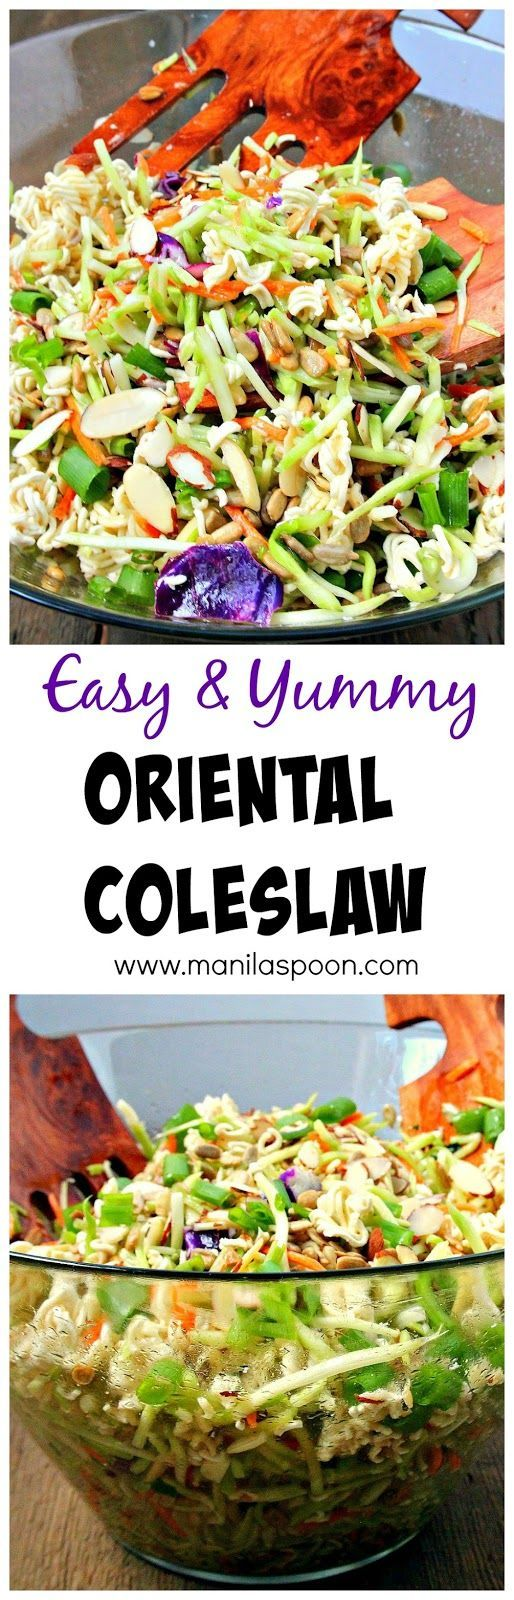 Very easy and tasty salad to make! Perfect for picnics and potlucks, or any gathering - Oriental (Asian) Coleslaw.